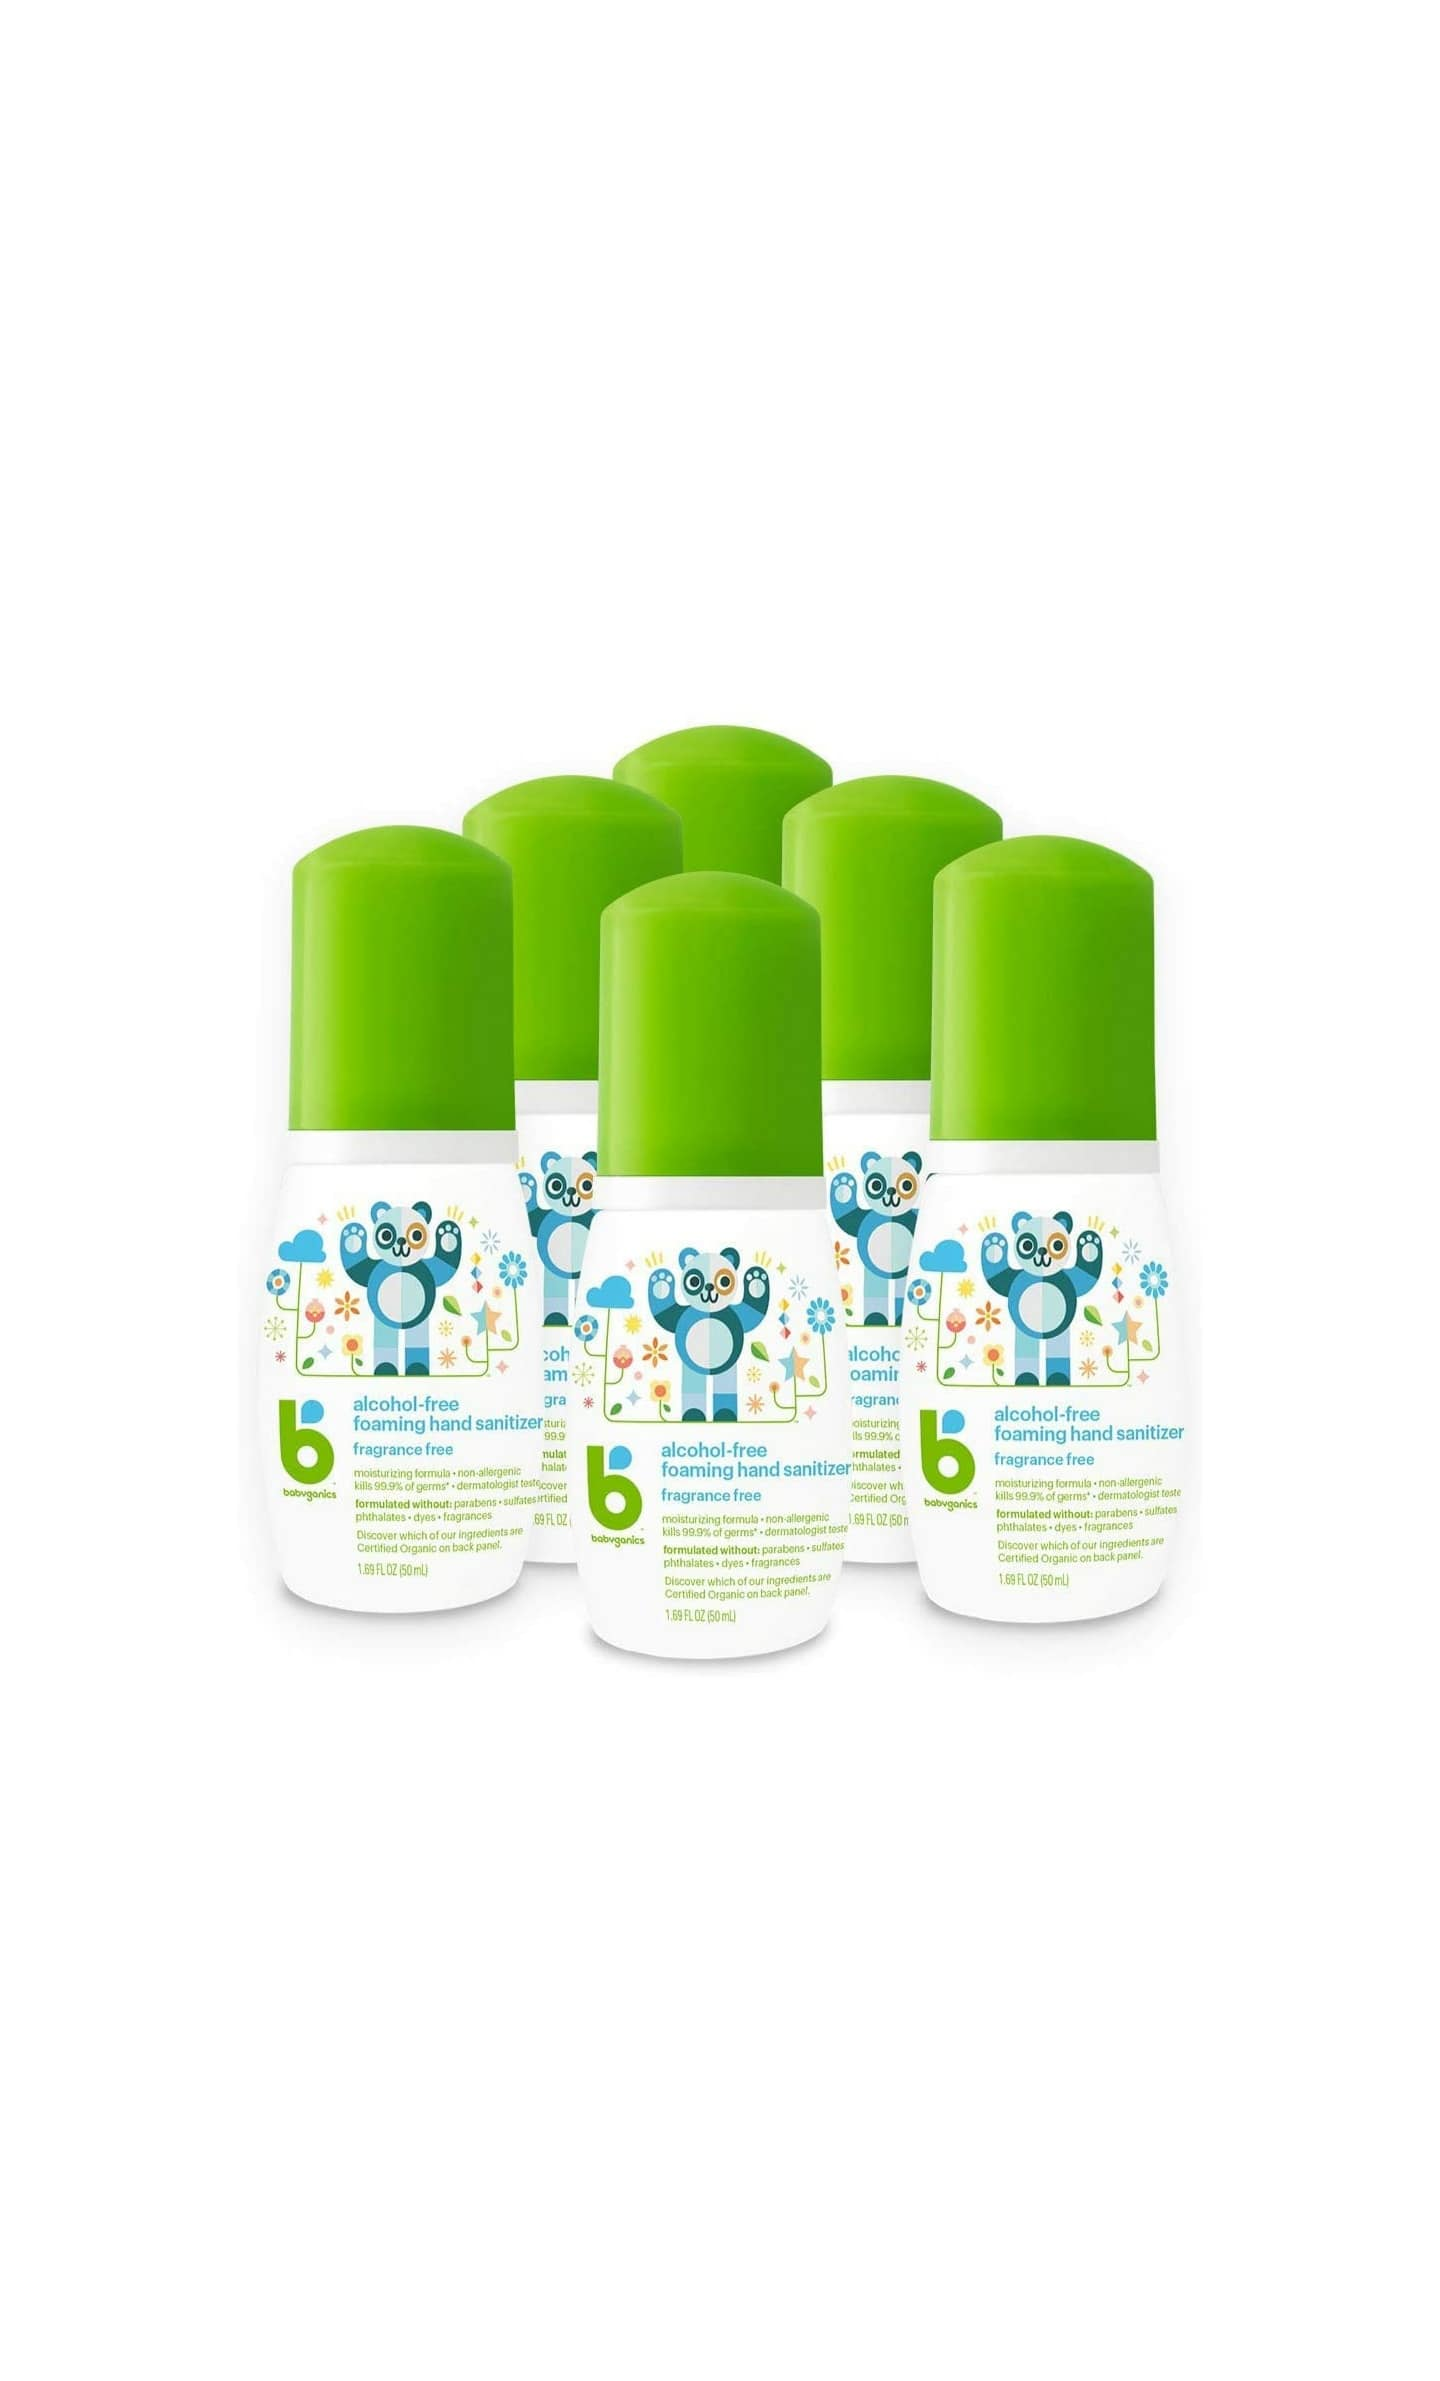 Babyganics Alcohol-Free Foaming Hand Sanitizer, On-The-Go, Fragrance Free, 1.69 oz, 6 Pack on Amazon for $19.74 or less